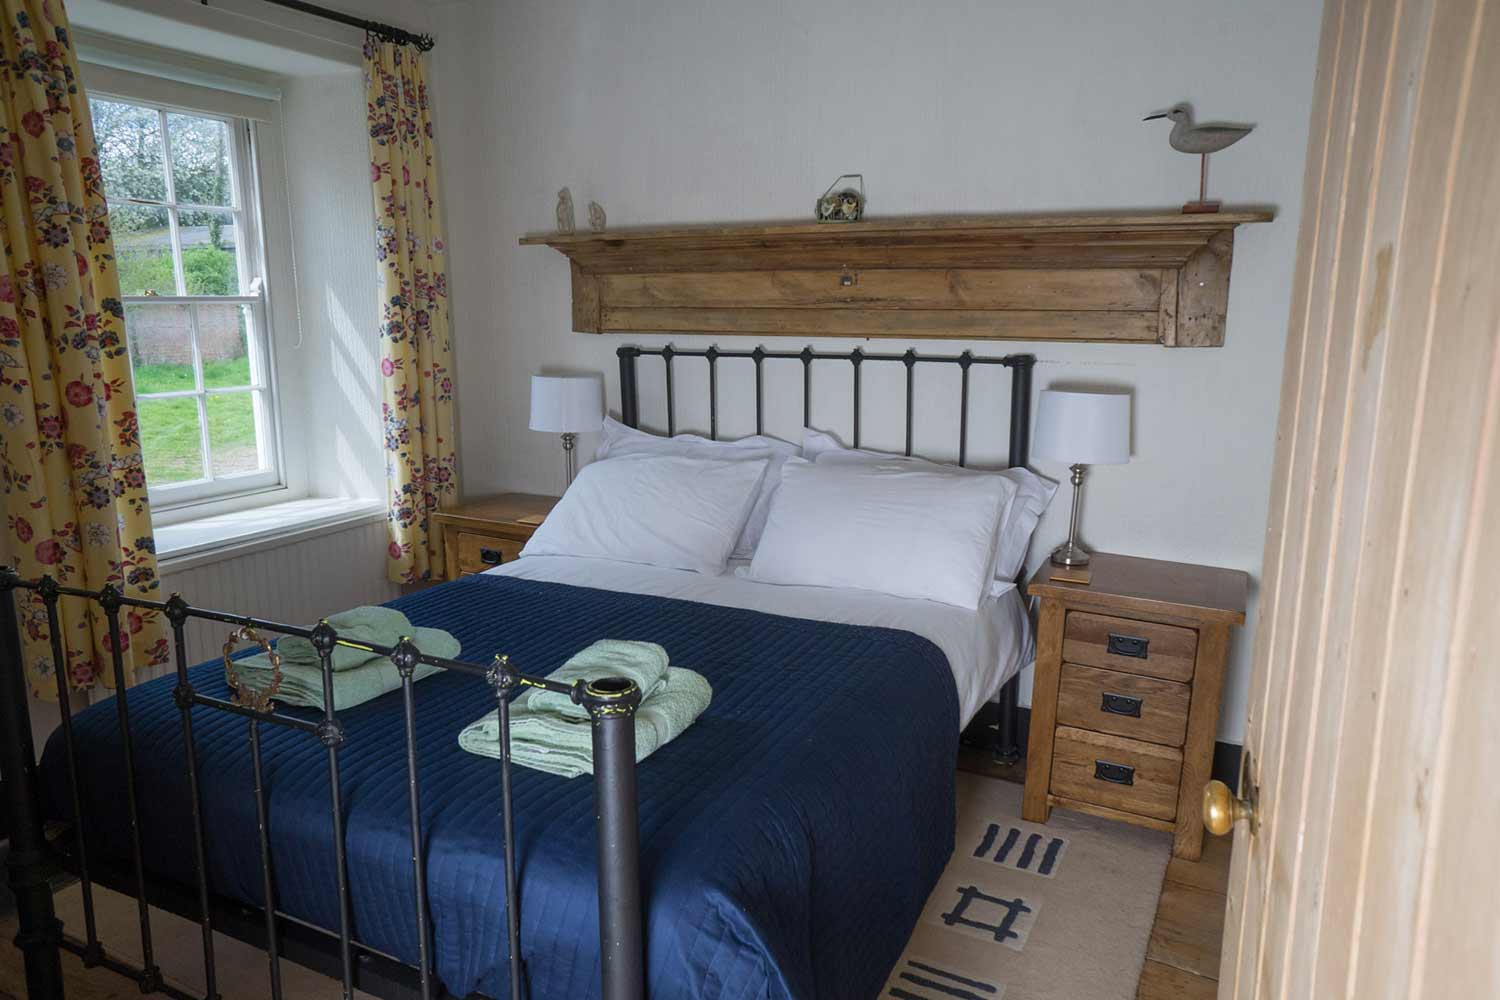 Group-holiday-cottage-accommodation-in-the-Welsh-Brecon-Beacons.jpg